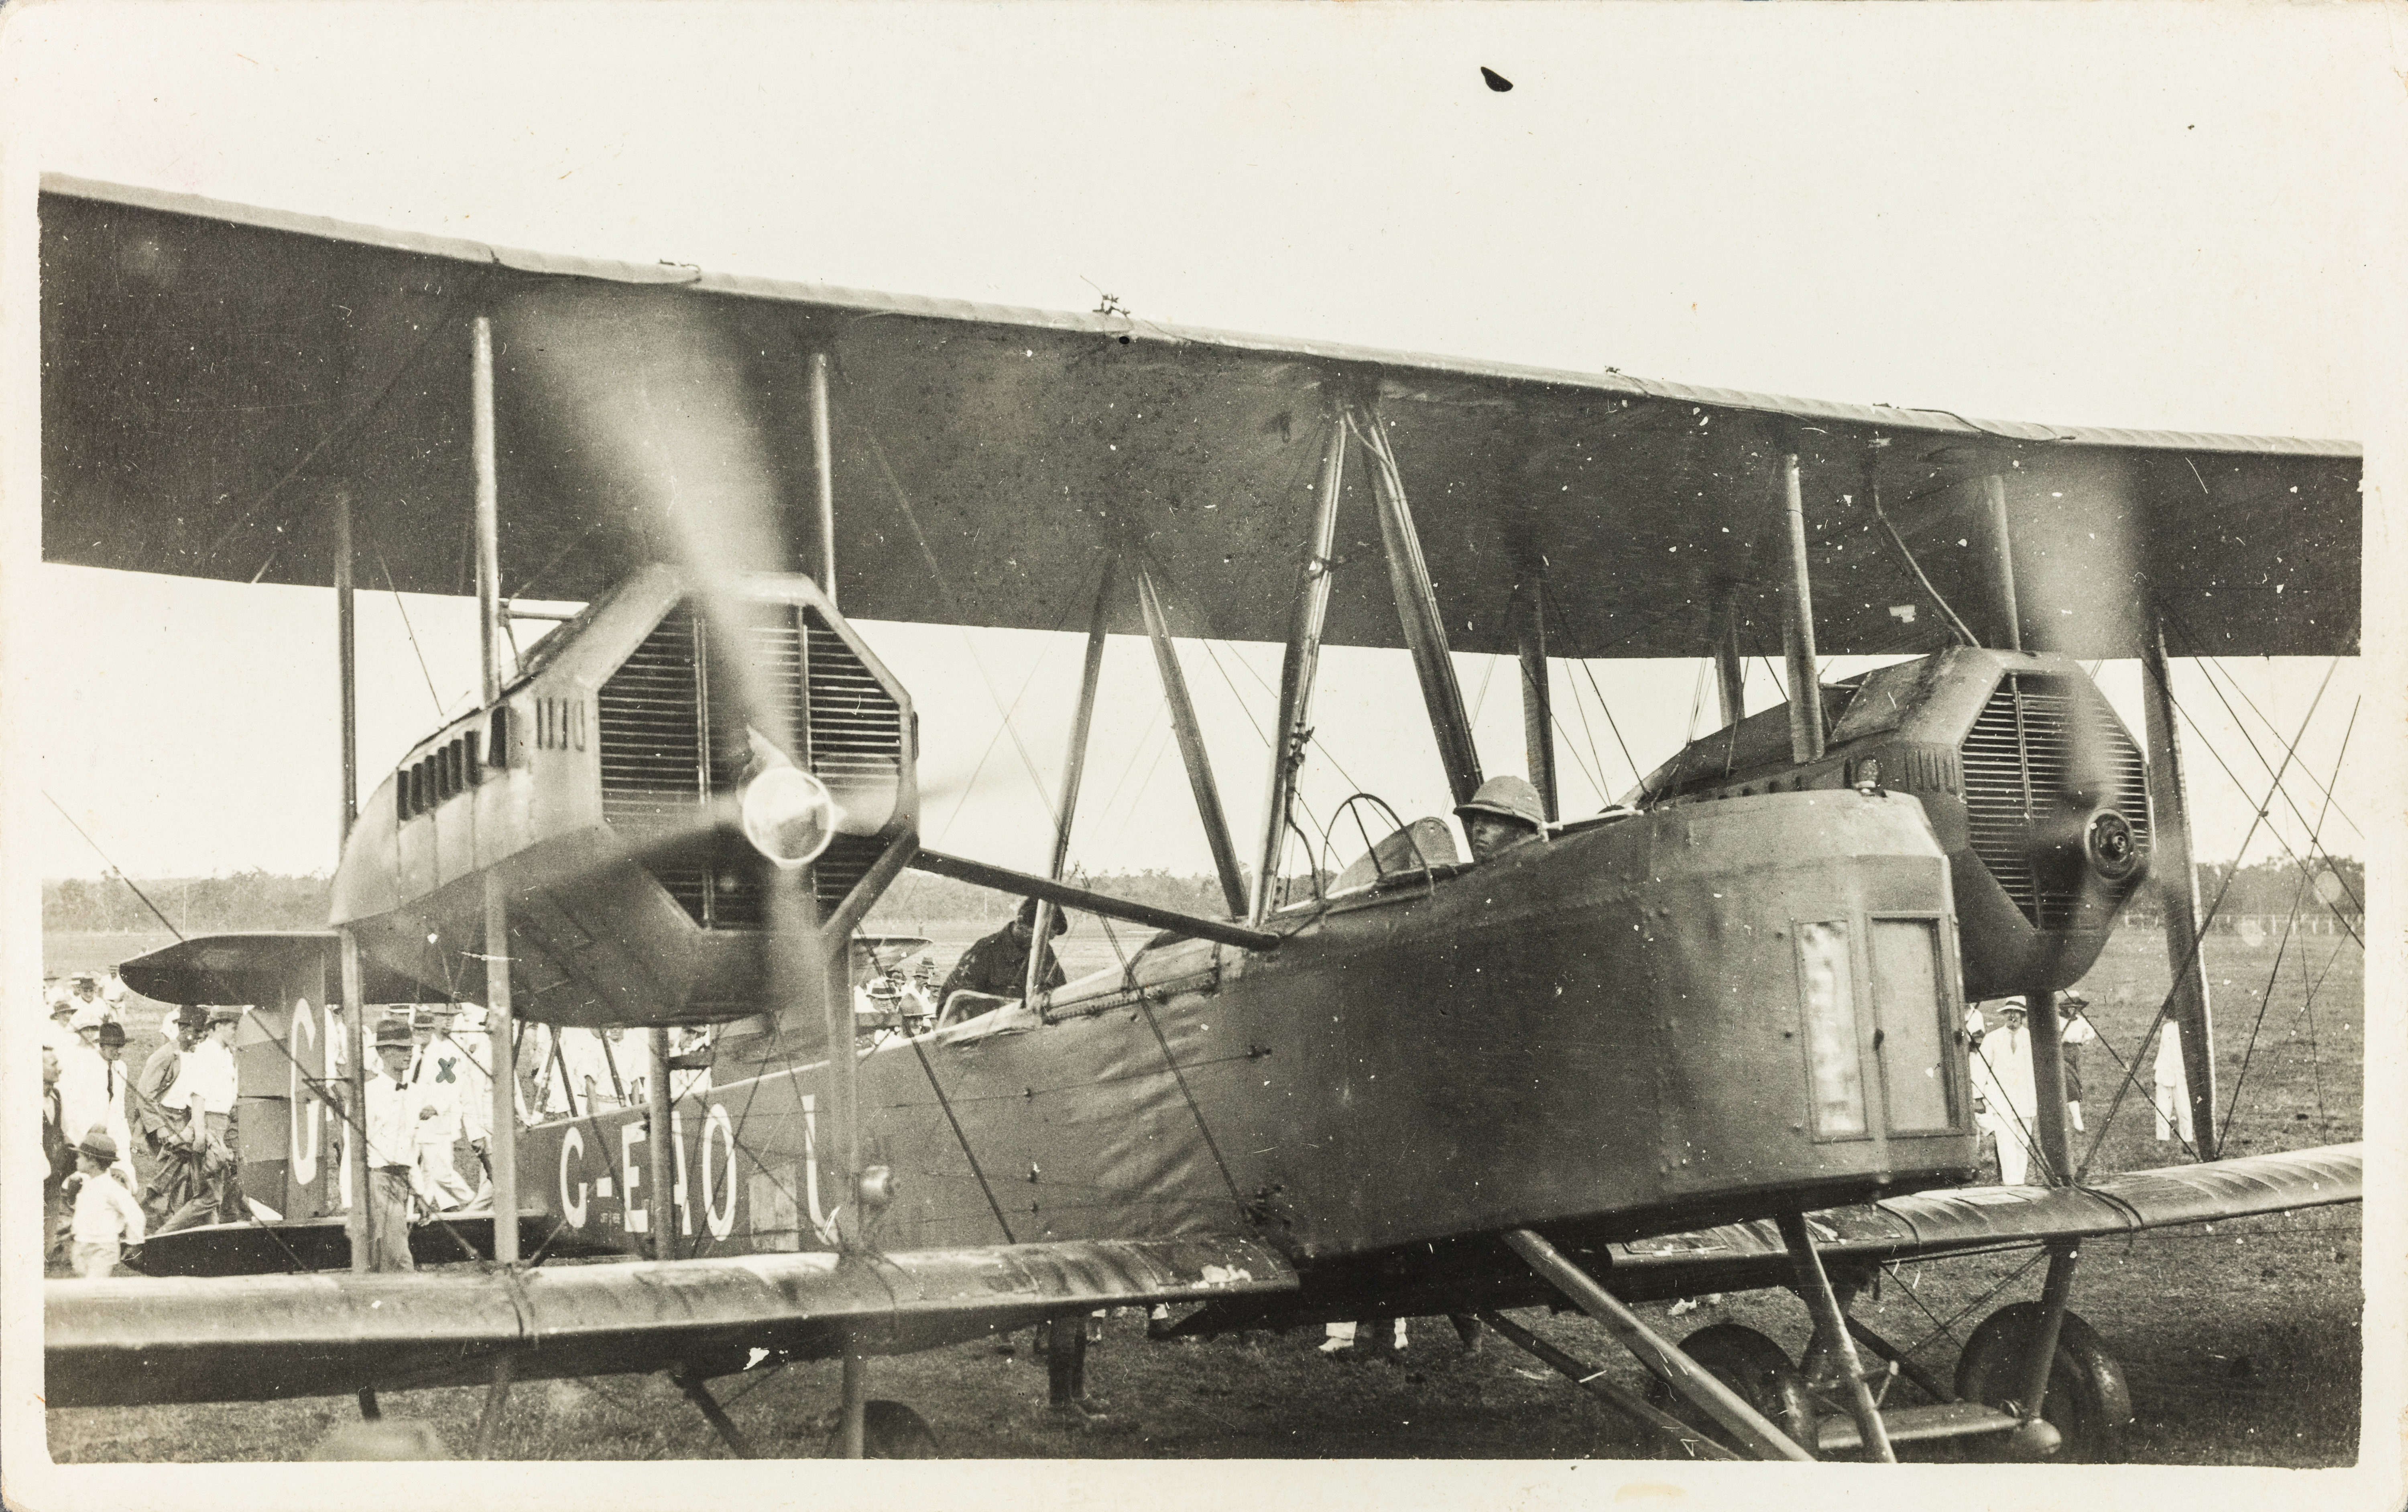 The engines of the Vickers Vimy flown by the Smith Brothers and their crew in the Great Air Race of 1919.